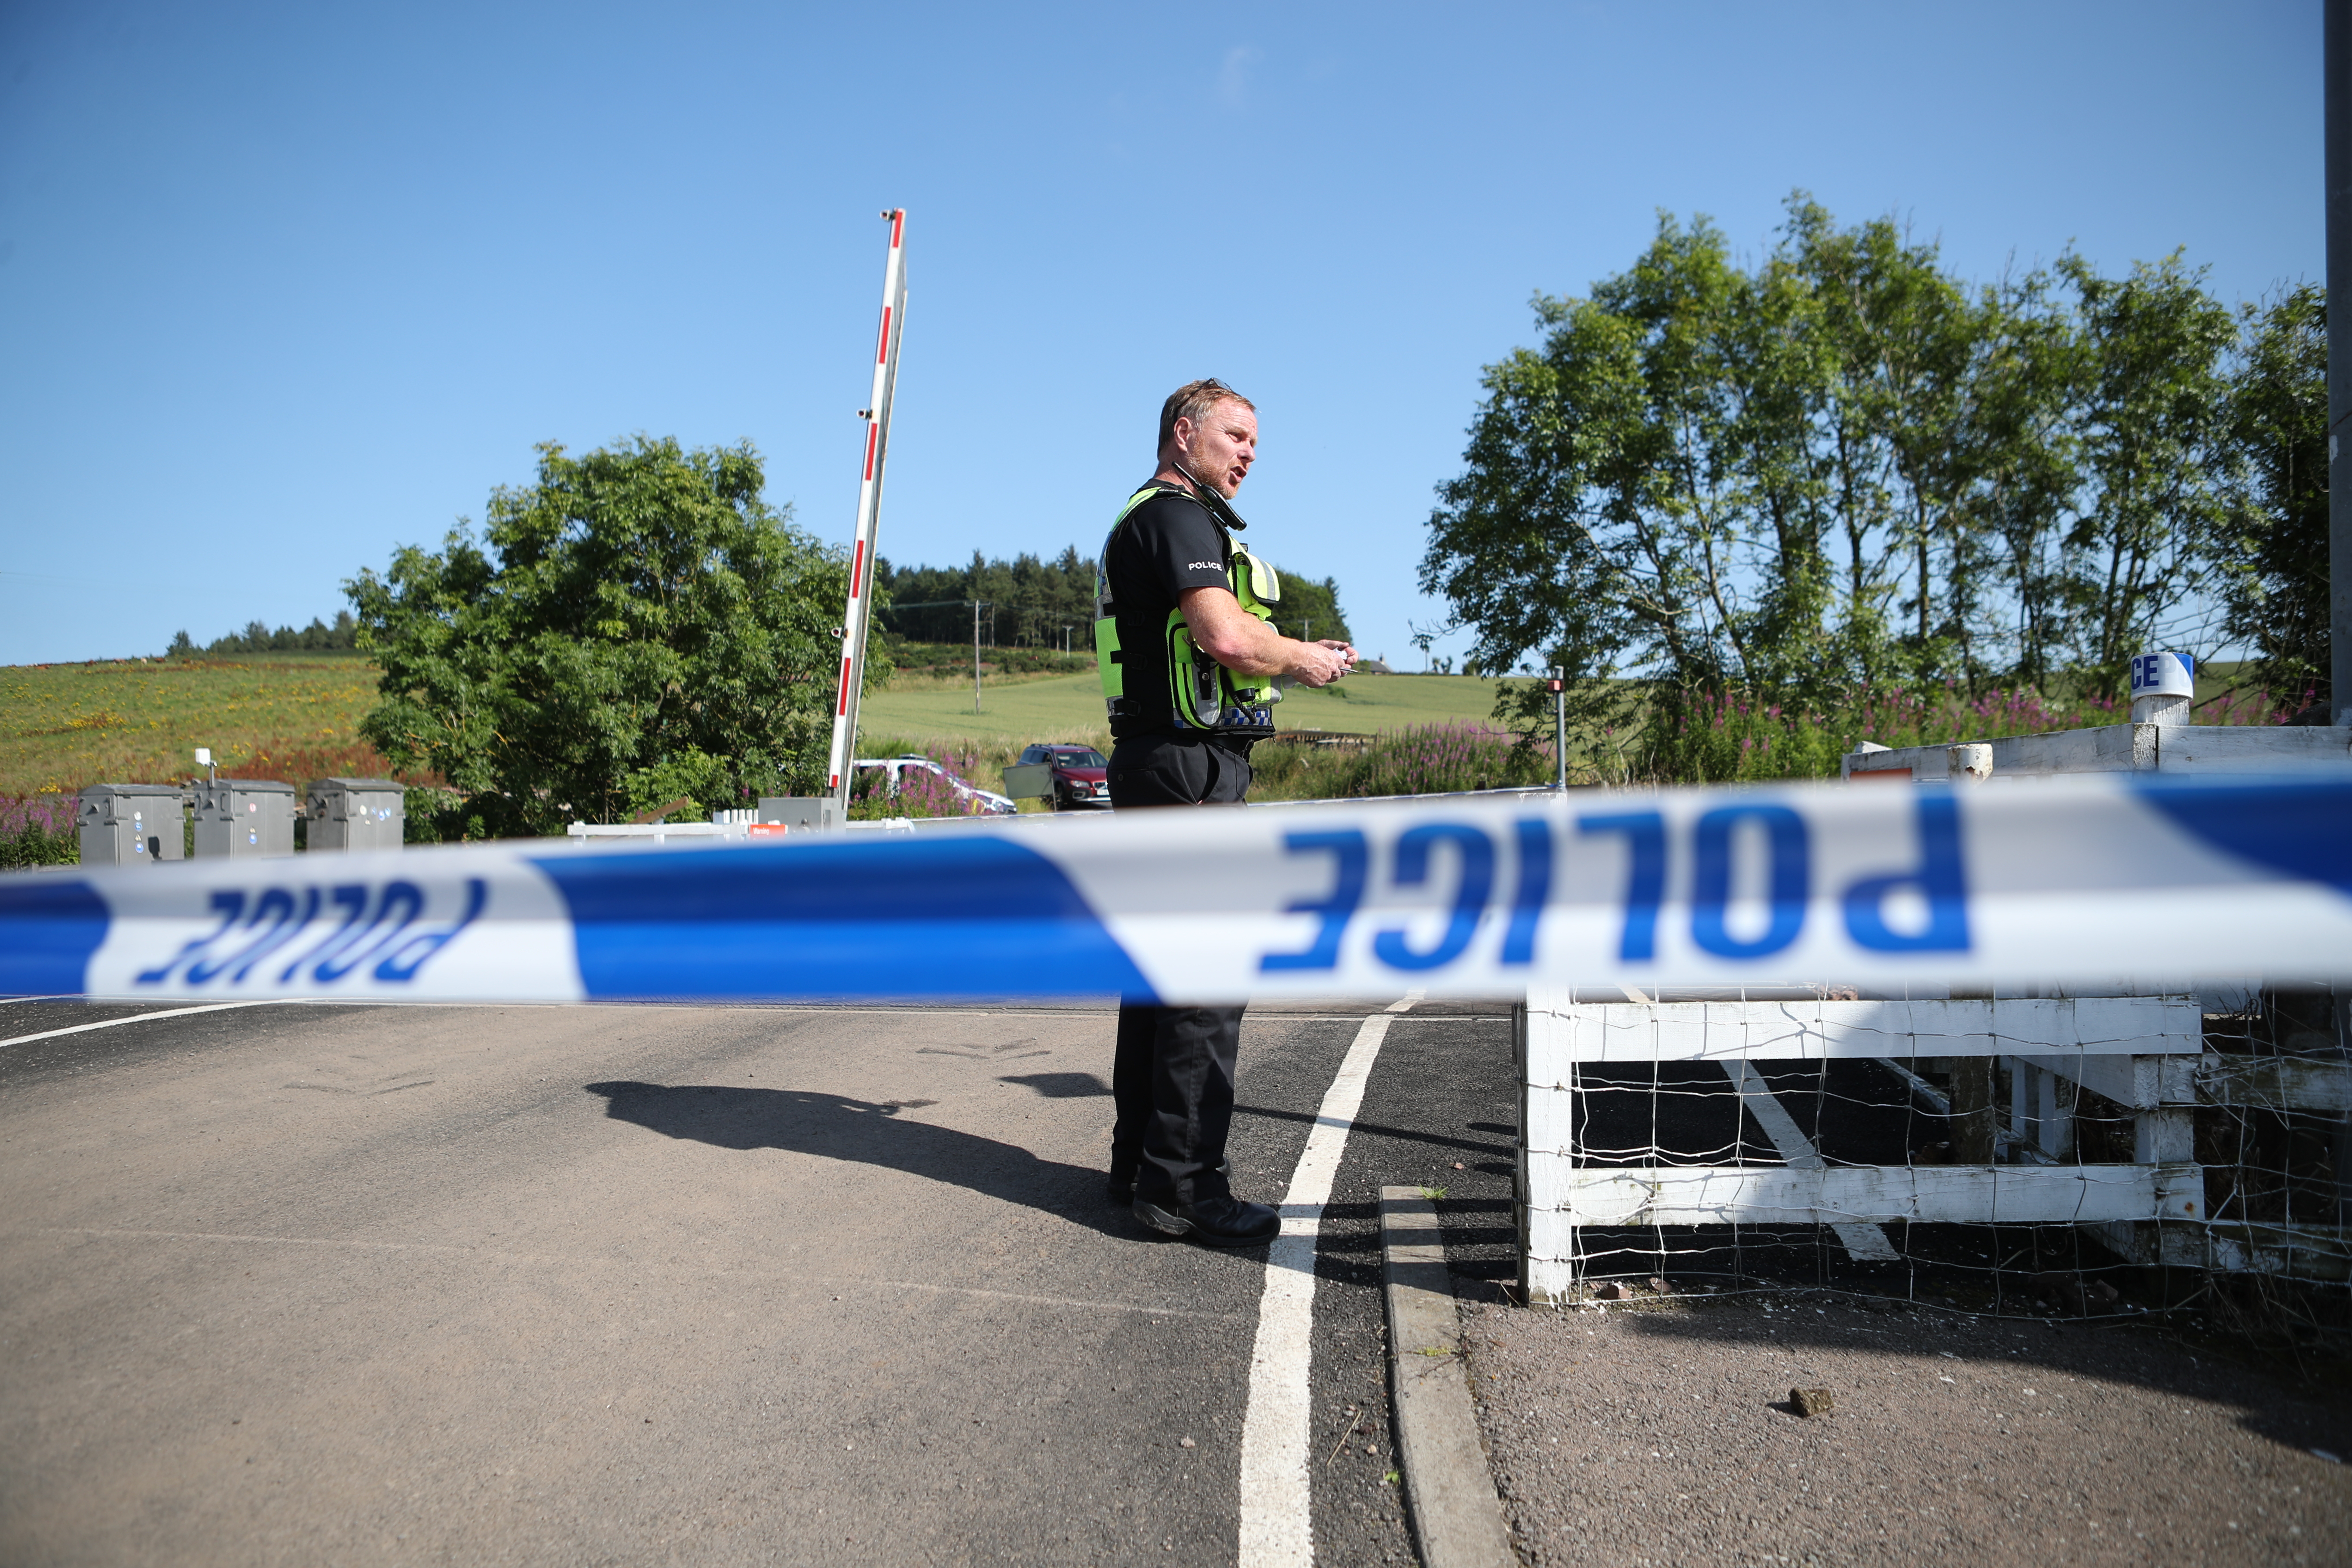 A police officer at a cordon at Carmont crossing, south of the scene in Stonehaven, Aberdeenshire, where the 06.38 Aberdeen to Stonehaven ScotRail train derailed at about 9.40am this morning. The fire service, police and ambulance service are in attendance and the incident is ongoing. (Photo by Jane Barlow/PA Images via Getty Images)